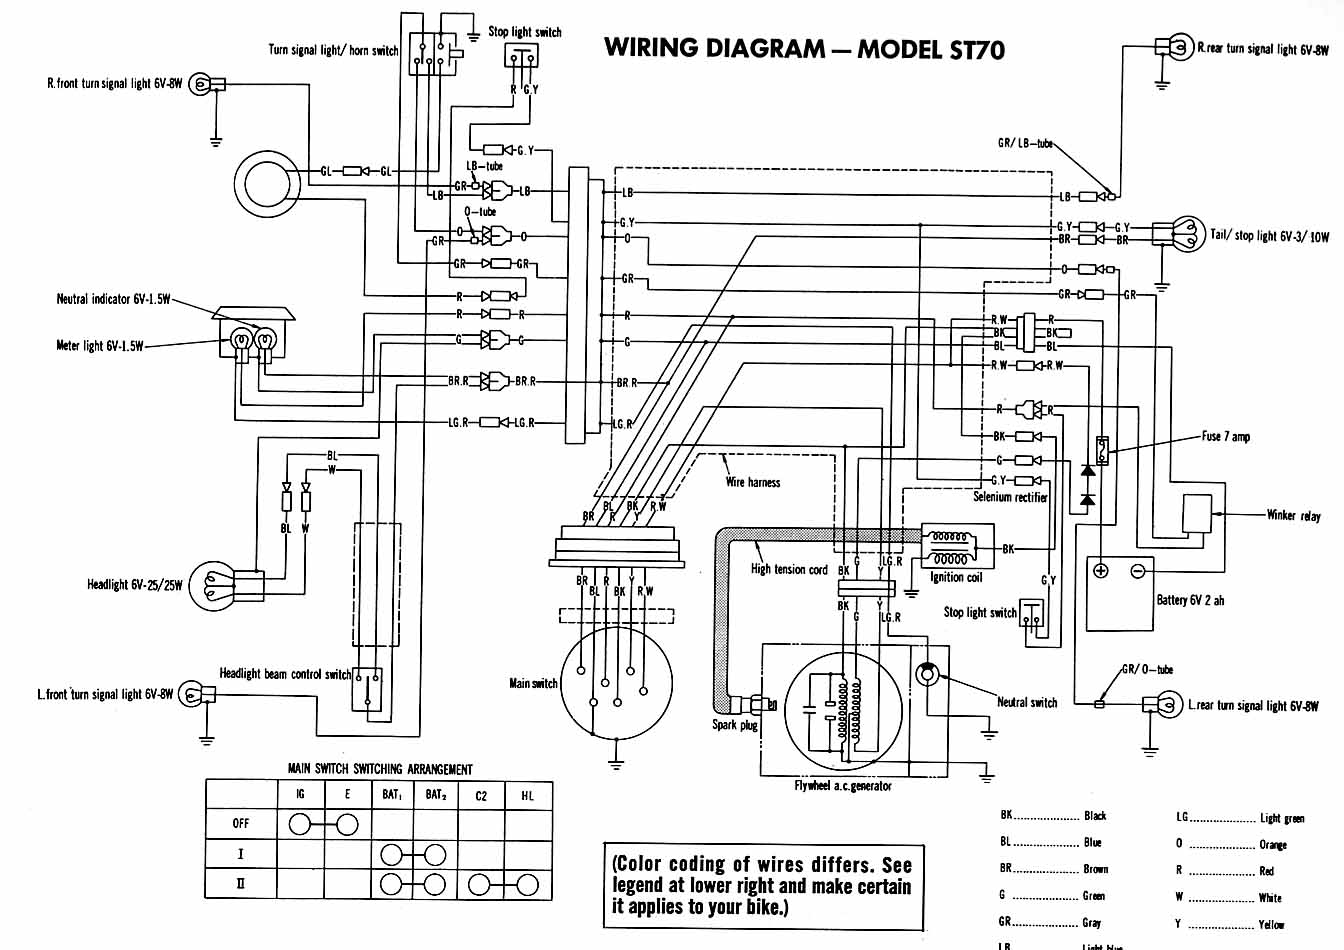 1970 Honda Trail 70 Wiring Diagram together with Fleetwood Motorhome Wiring Diagram in addition Honda Motorcycle Engine Diagram 2008 C70 also 1973 Honda Ct70 Wiring Diagram as well Lifan 200cc Engine Diagrams. on honda z50 wiring diagram